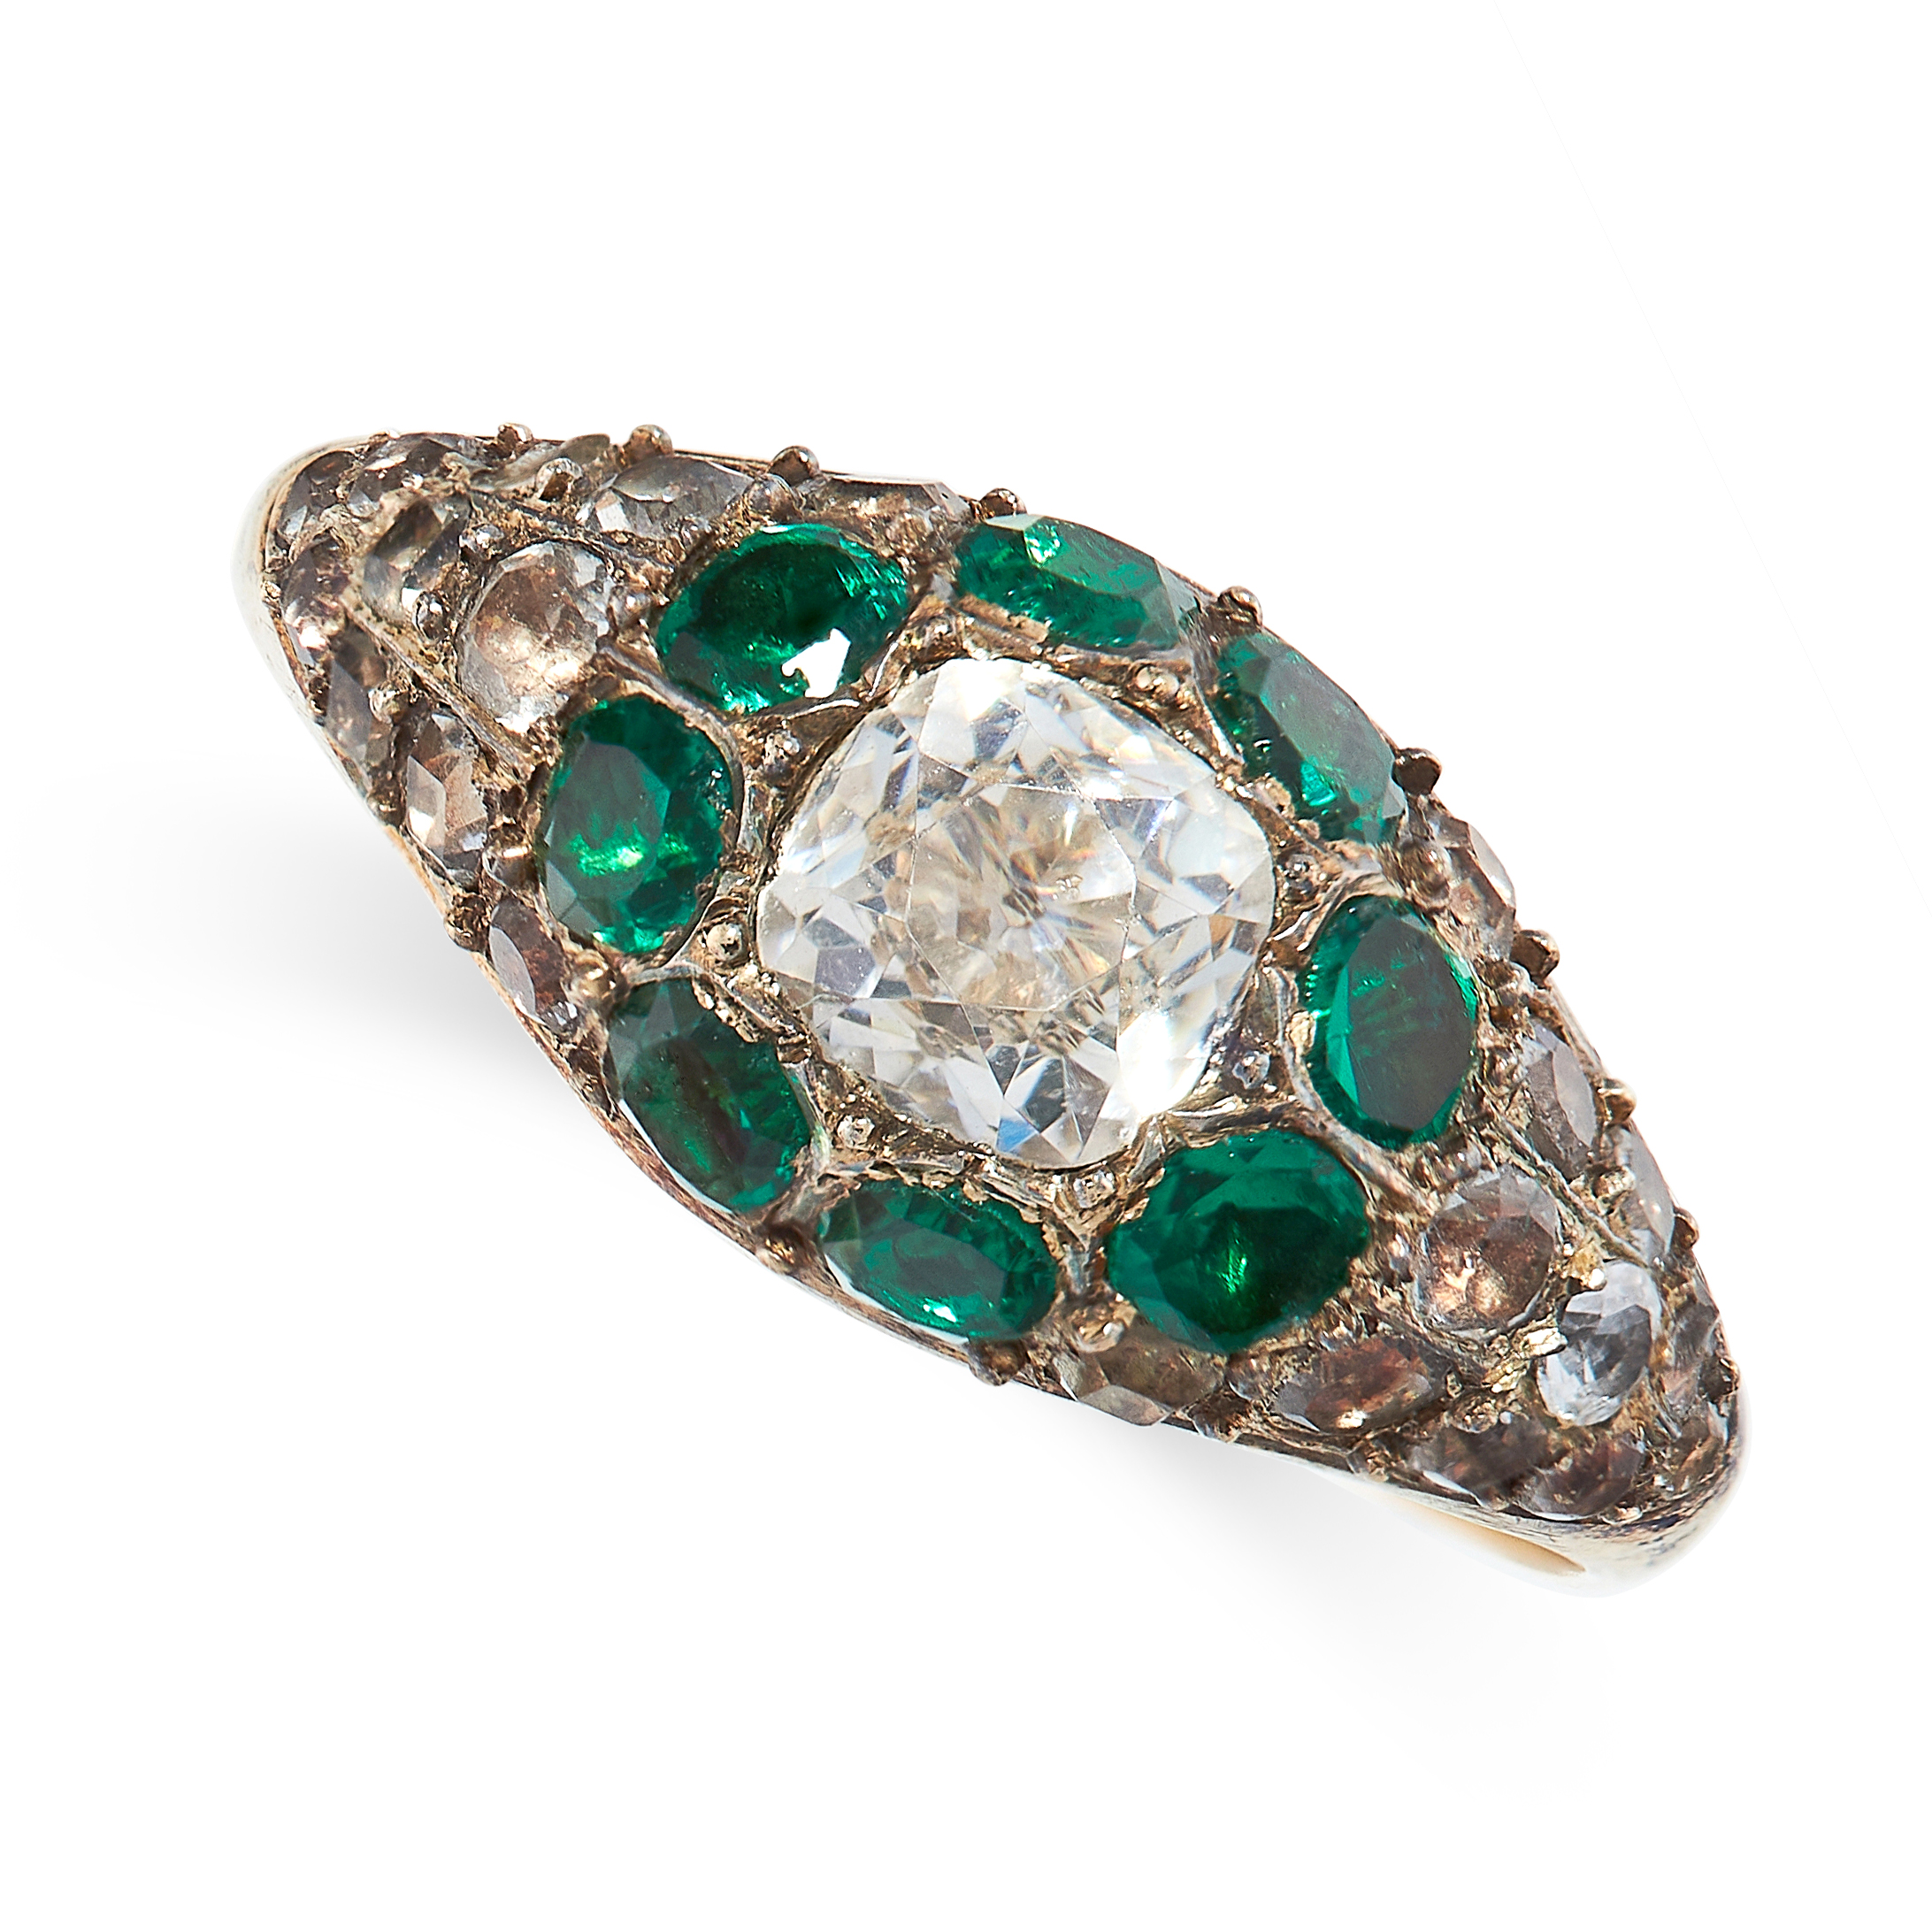 ANTIQUE PASTE RING comprising of a central cushion cut white gemstone in a border of round cut green